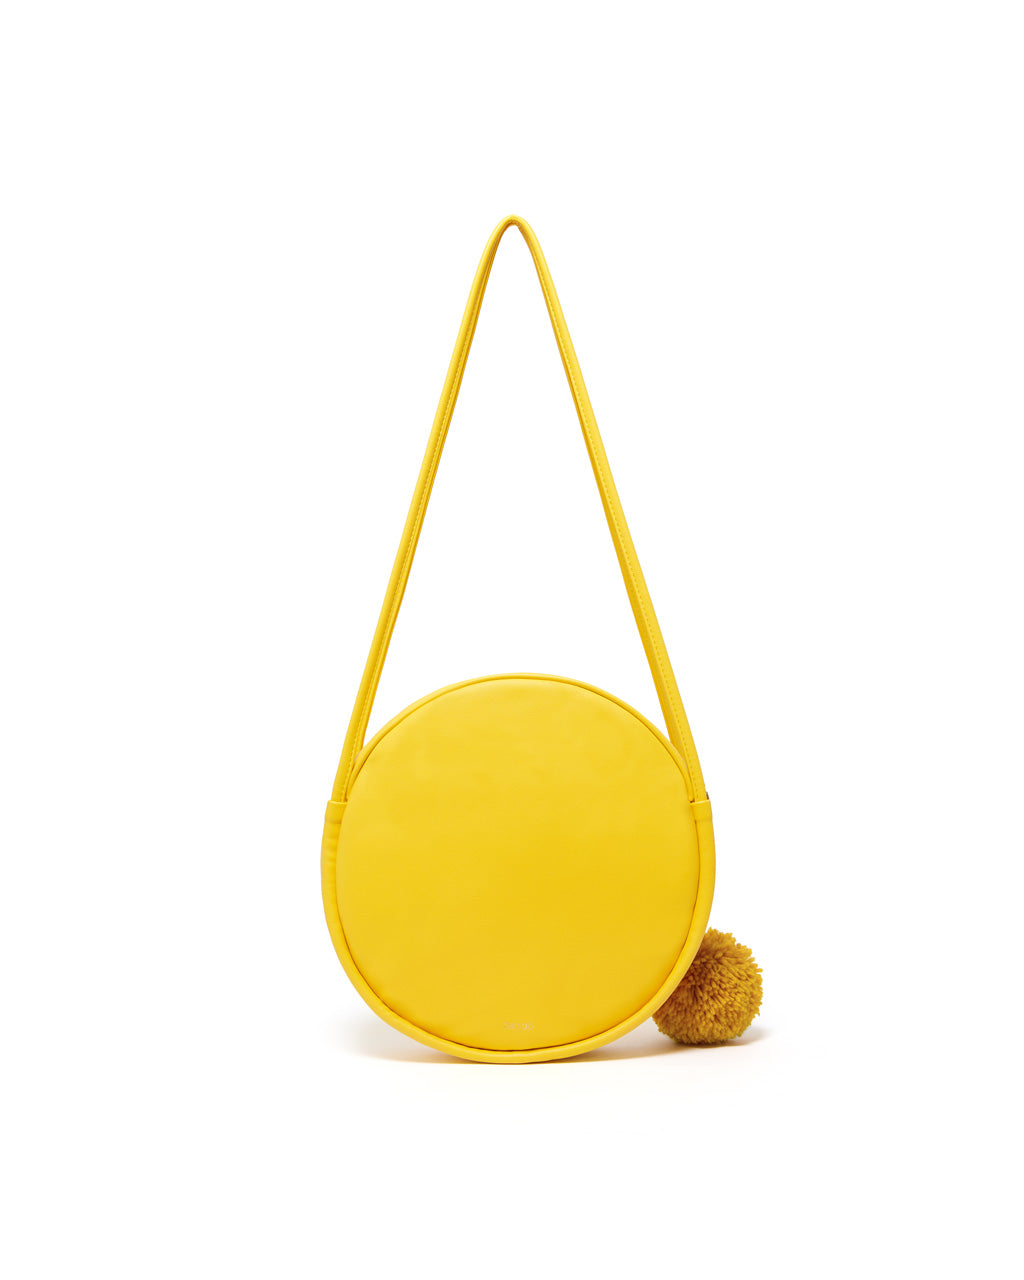 amigo circle bag - sunflower